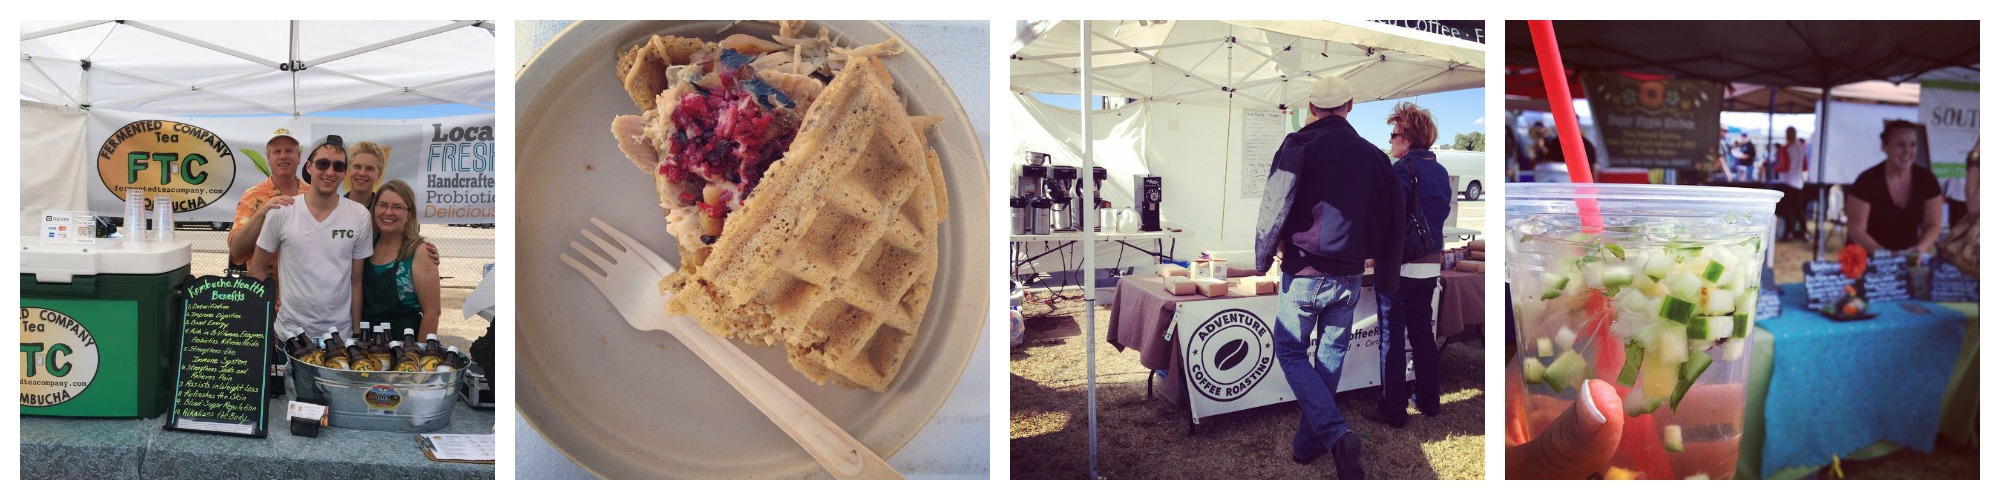 Pictures from the Viva la Local Festival in Tucson, fall 2014